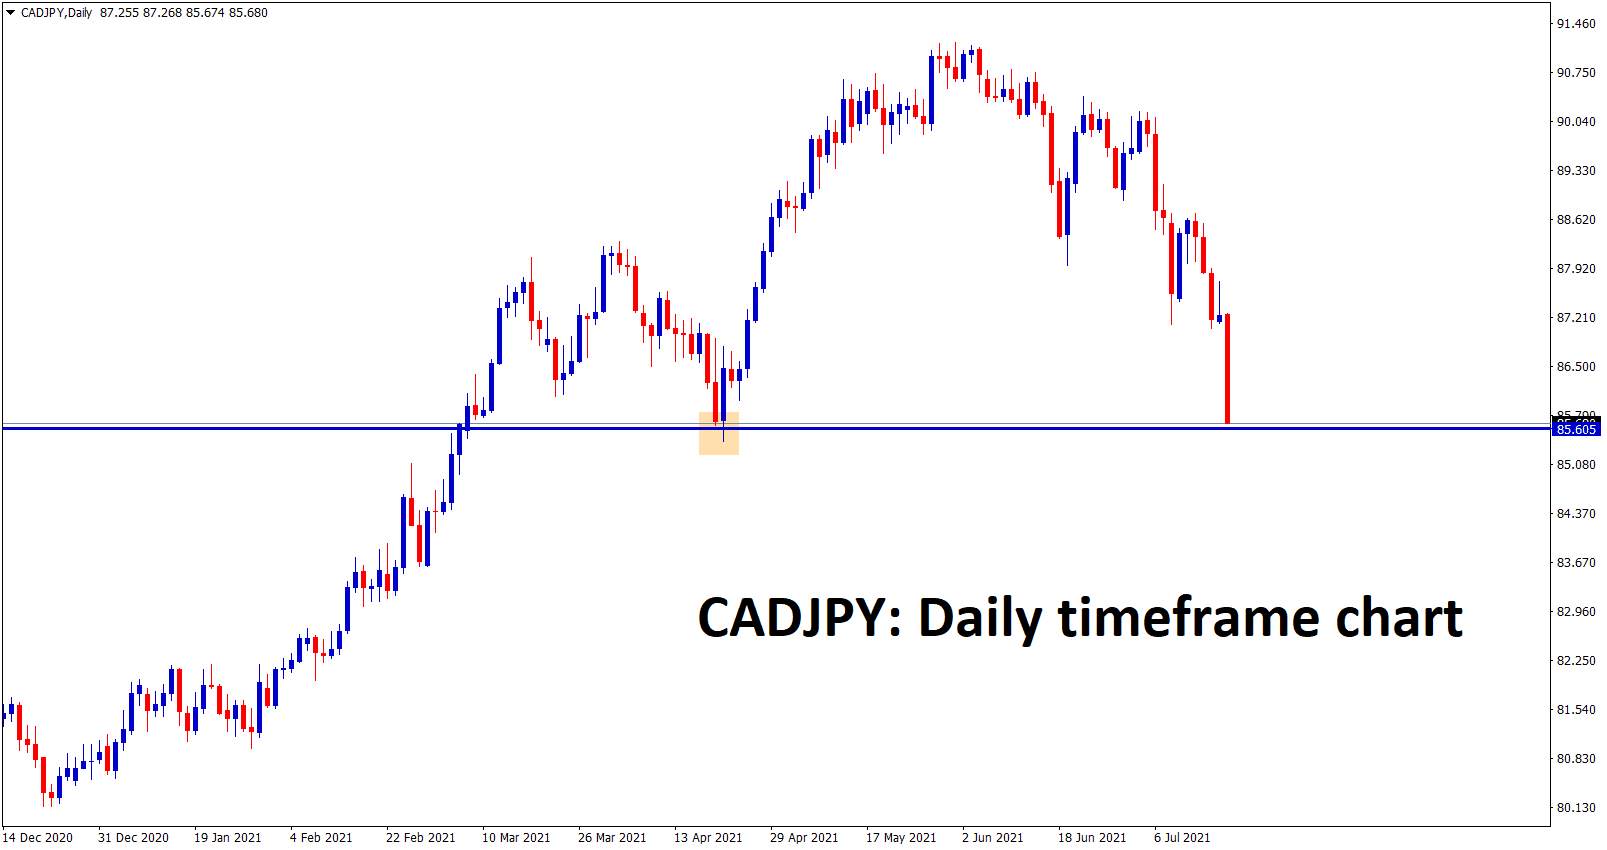 CADJPY going to reach the support area.